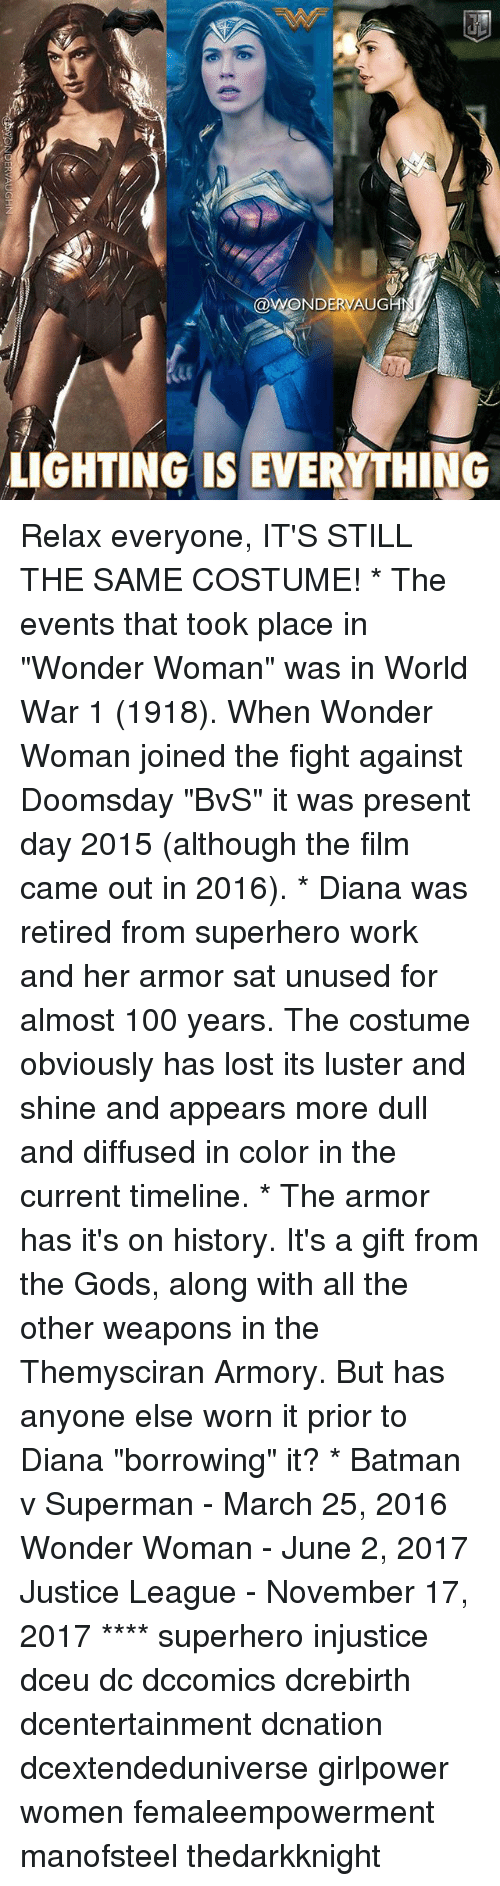 "Anaconda, Batman, and Memes: WONDERVAUG  LIGHTING IS EVERYTHING Relax everyone, IT'S STILL THE SAME COSTUME! * The events that took place in ""Wonder Woman"" was in World War 1 (1918). When Wonder Woman joined the fight against Doomsday ""BvS"" it was present day 2015 (although the film came out in 2016). * Diana was retired from superhero work and her armor sat unused for almost 100 years. The costume obviously has lost its luster and shine and appears more dull and diffused in color in the current timeline. * The armor has it's on history. It's a gift from the Gods, along with all the other weapons in the Themysciran Armory. But has anyone else worn it prior to Diana ""borrowing"" it? * Batman v Superman - March 25, 2016 Wonder Woman - June 2, 2017 Justice League - November 17, 2017 **** superhero injustice dceu dc dccomics dcrebirth dcentertainment dcnation dcextendeduniverse girlpower women femaleempowerment manofsteel thedarkknight"